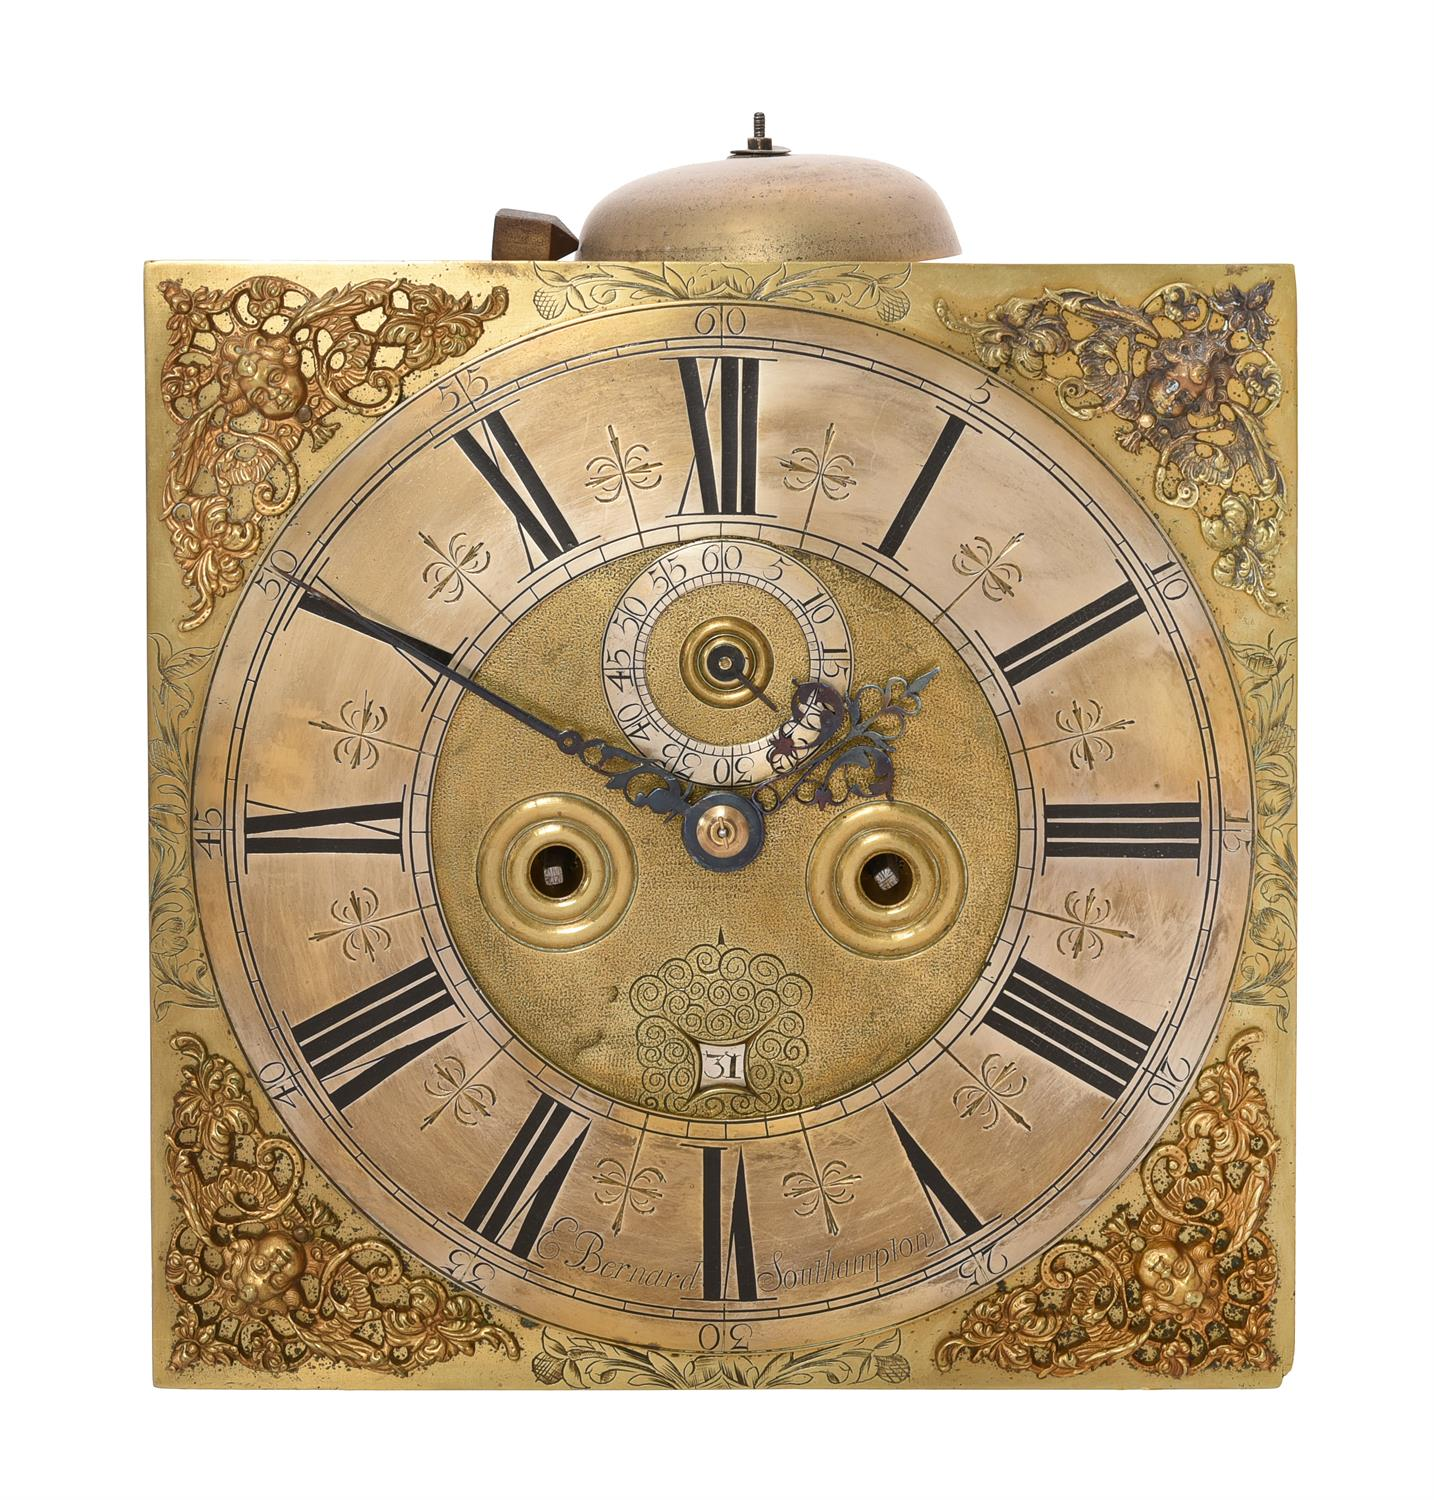 A William III provincial longcase clock movement with 11 inch dial - Image 4 of 4